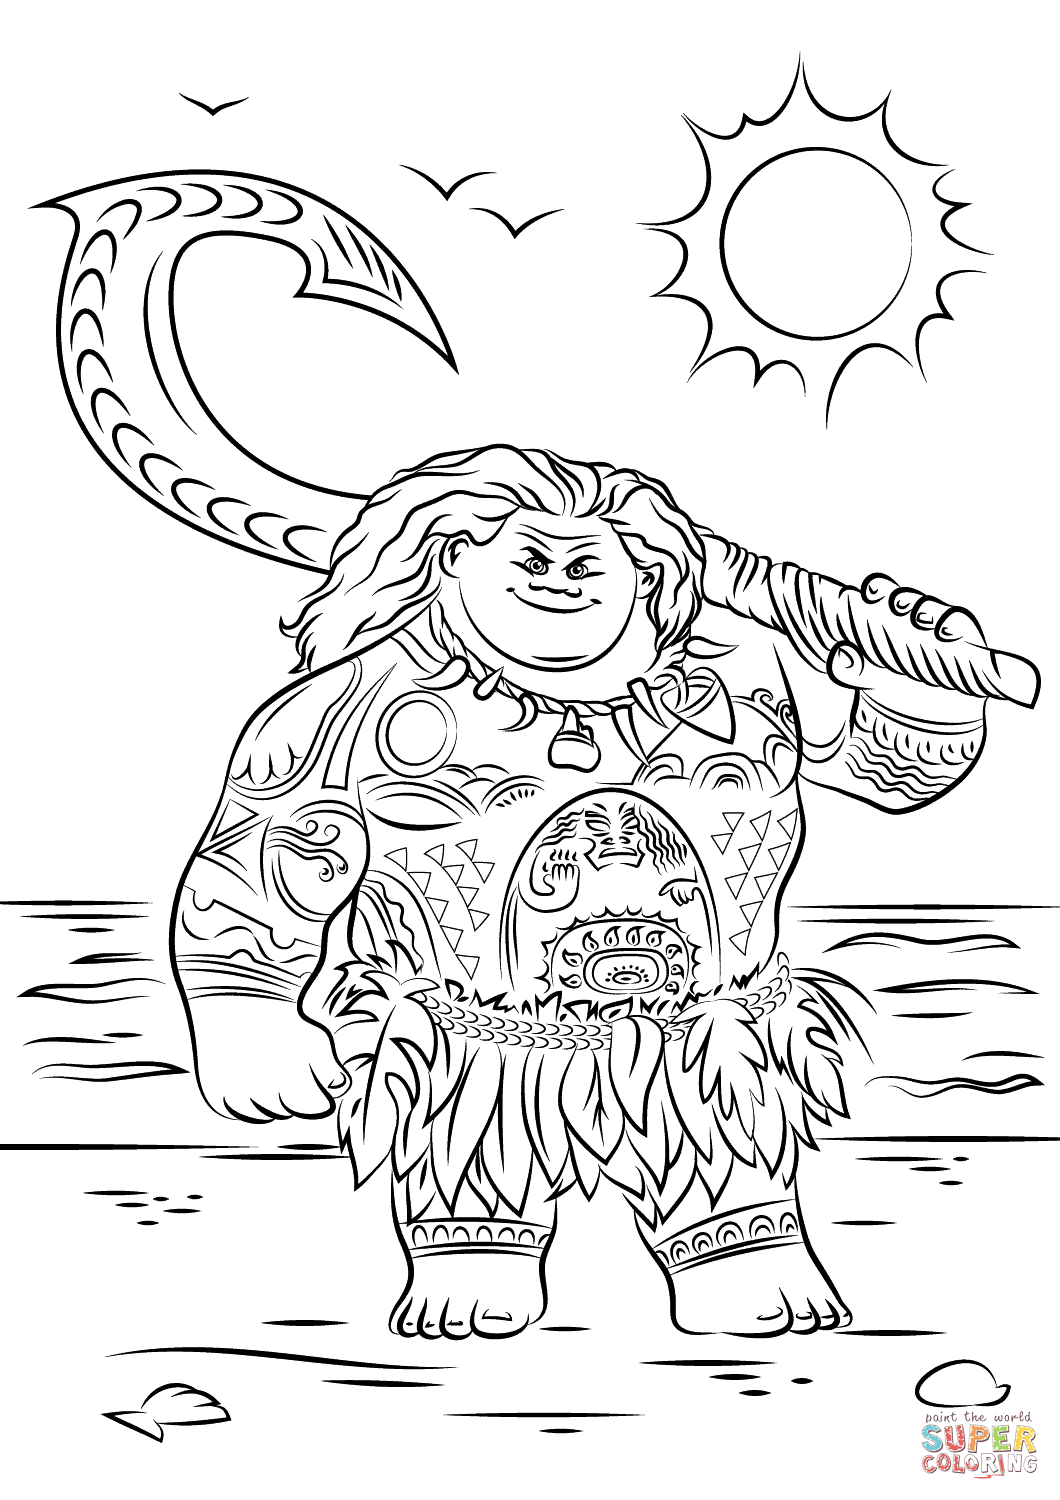 Maui From Moana Coloring Page Free Printable Coloring Pages